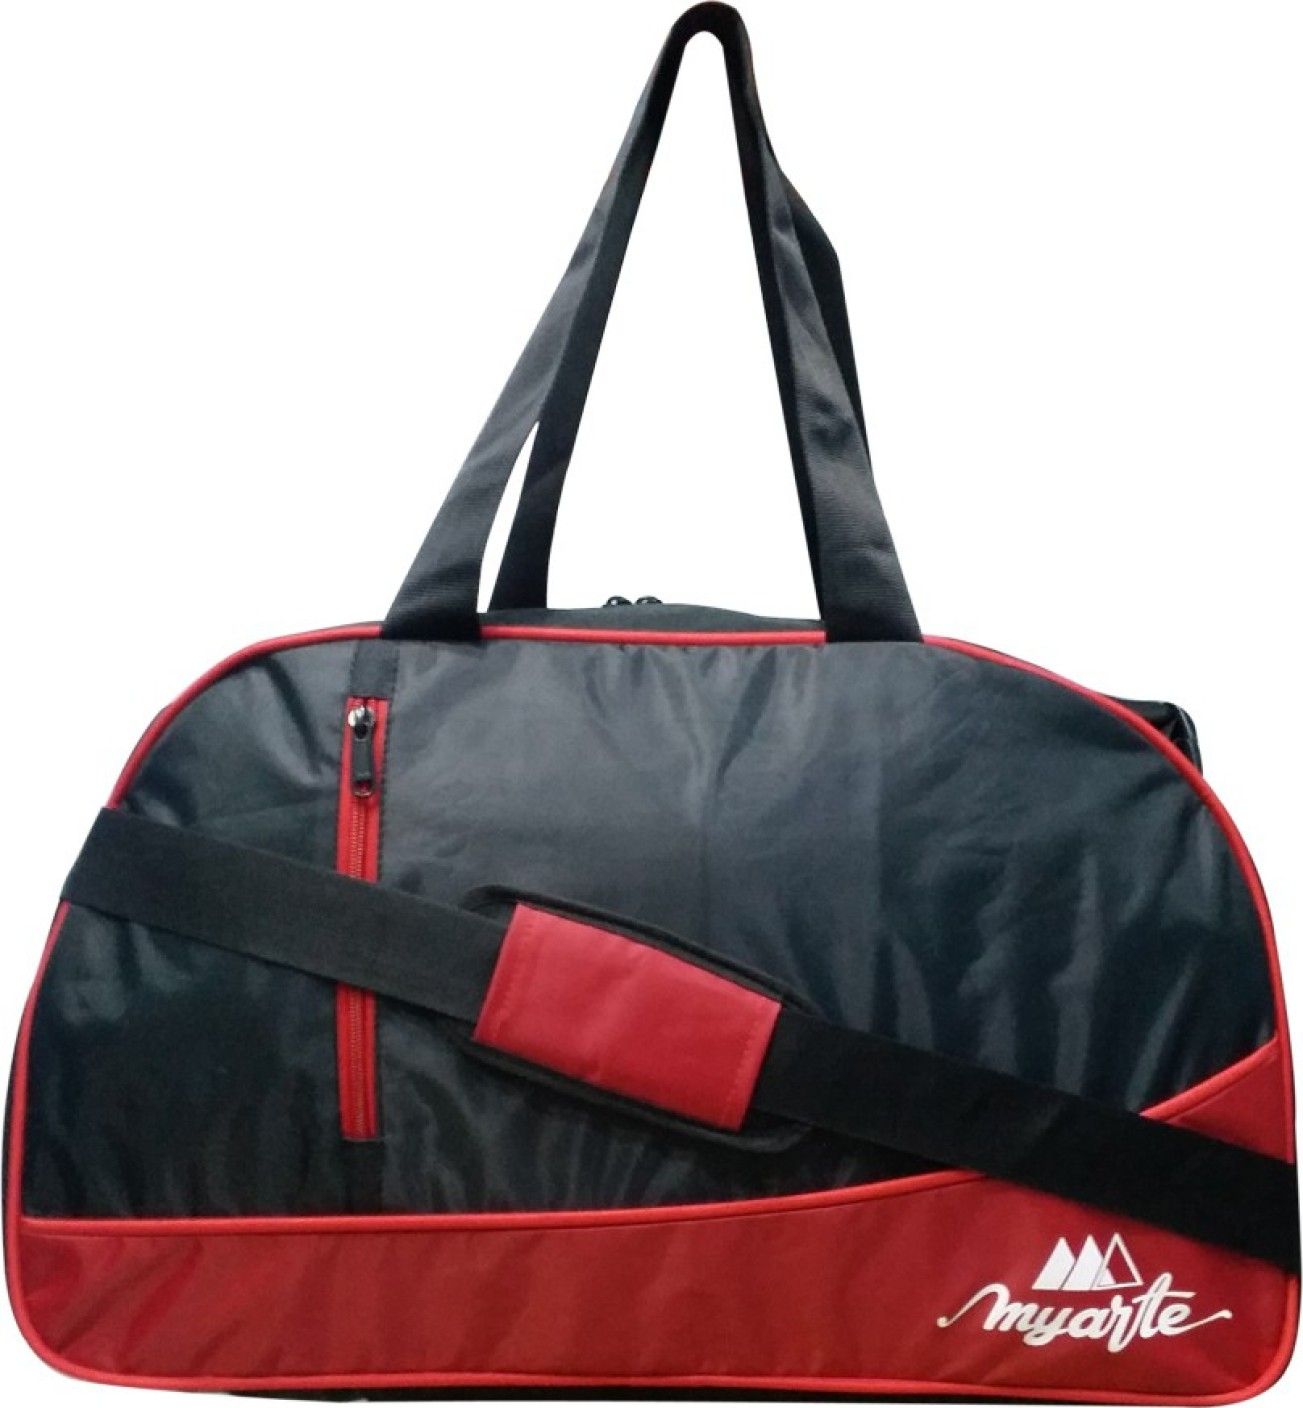 Gym Bag Flipkart: Buy Myarte STAR Sports Bag Online